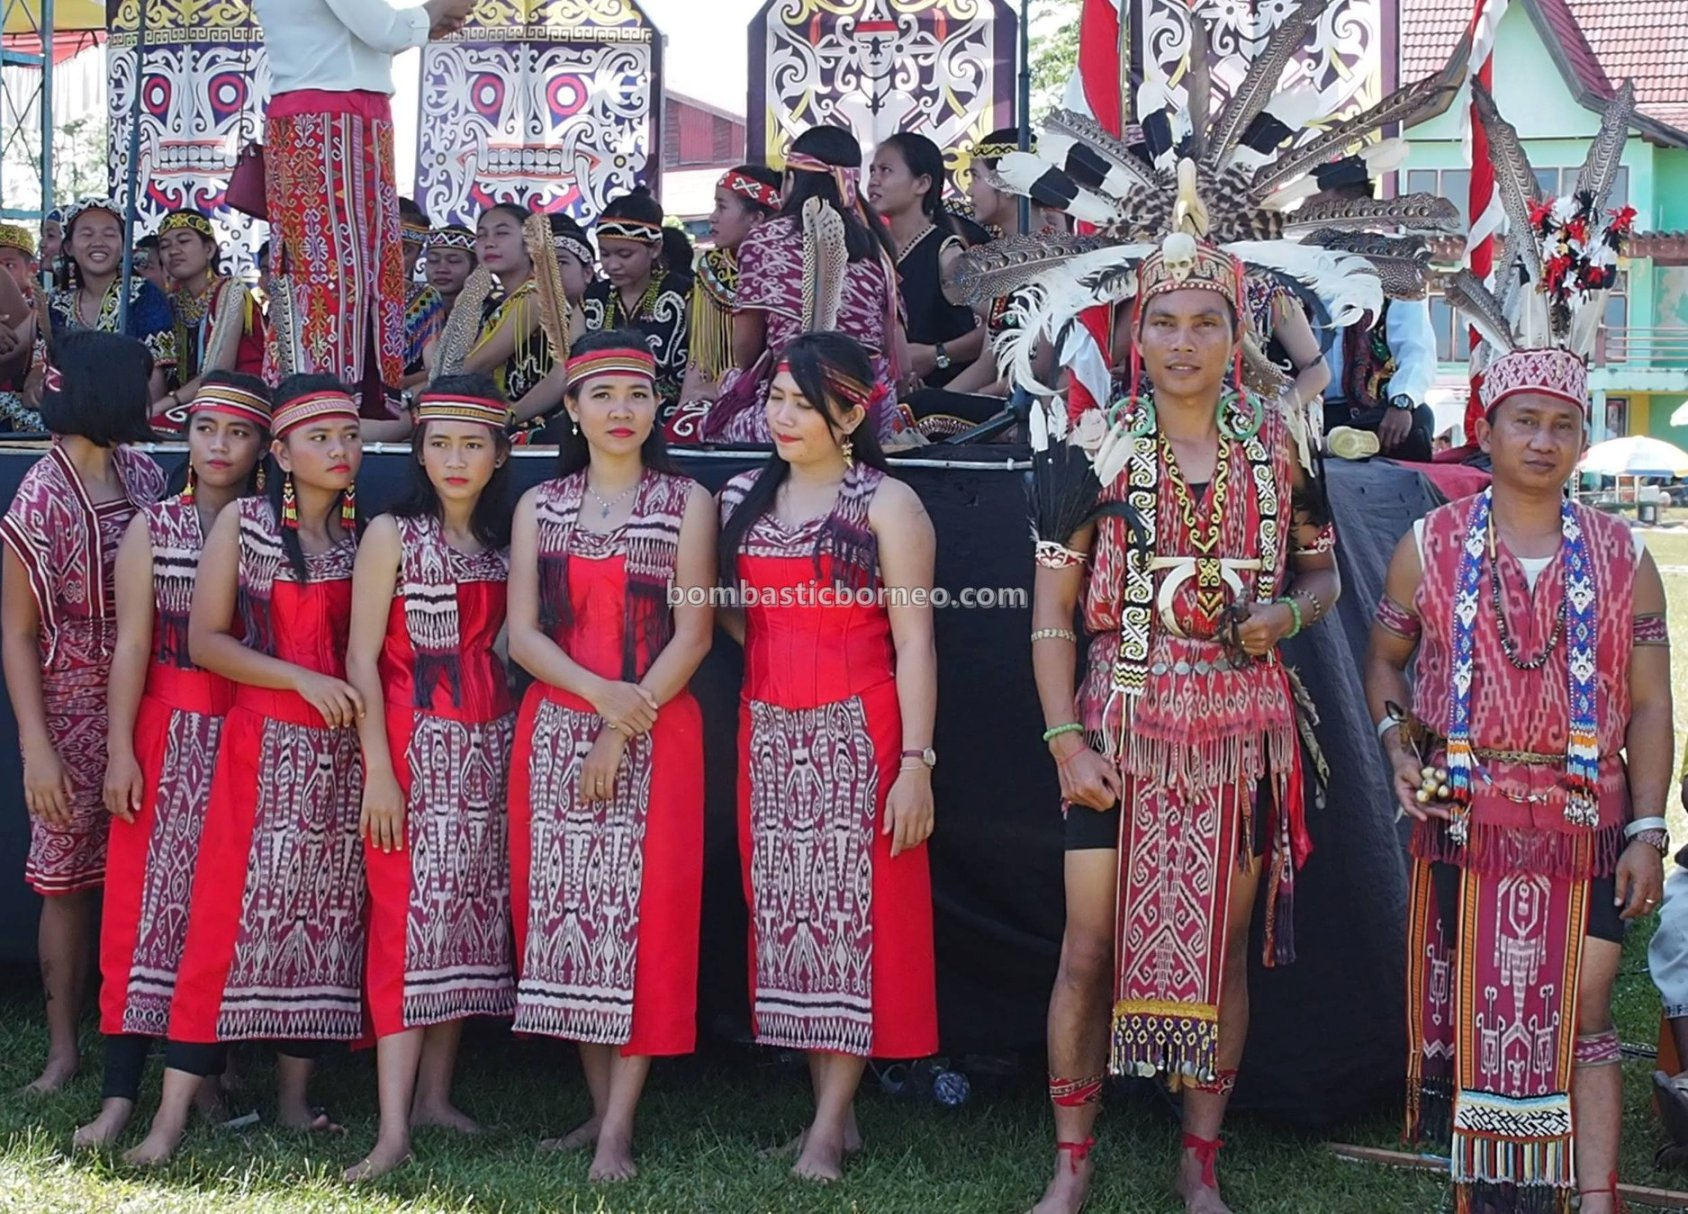 Harvest festival, authentic, budaya, Putussibau, backpackers, native, tribal, Suku Dayak, Obyek wisata, travel guide, Borneo, Cross Border, 探索婆罗洲游踪, 印尼西加里曼丹, 富都原住民文化